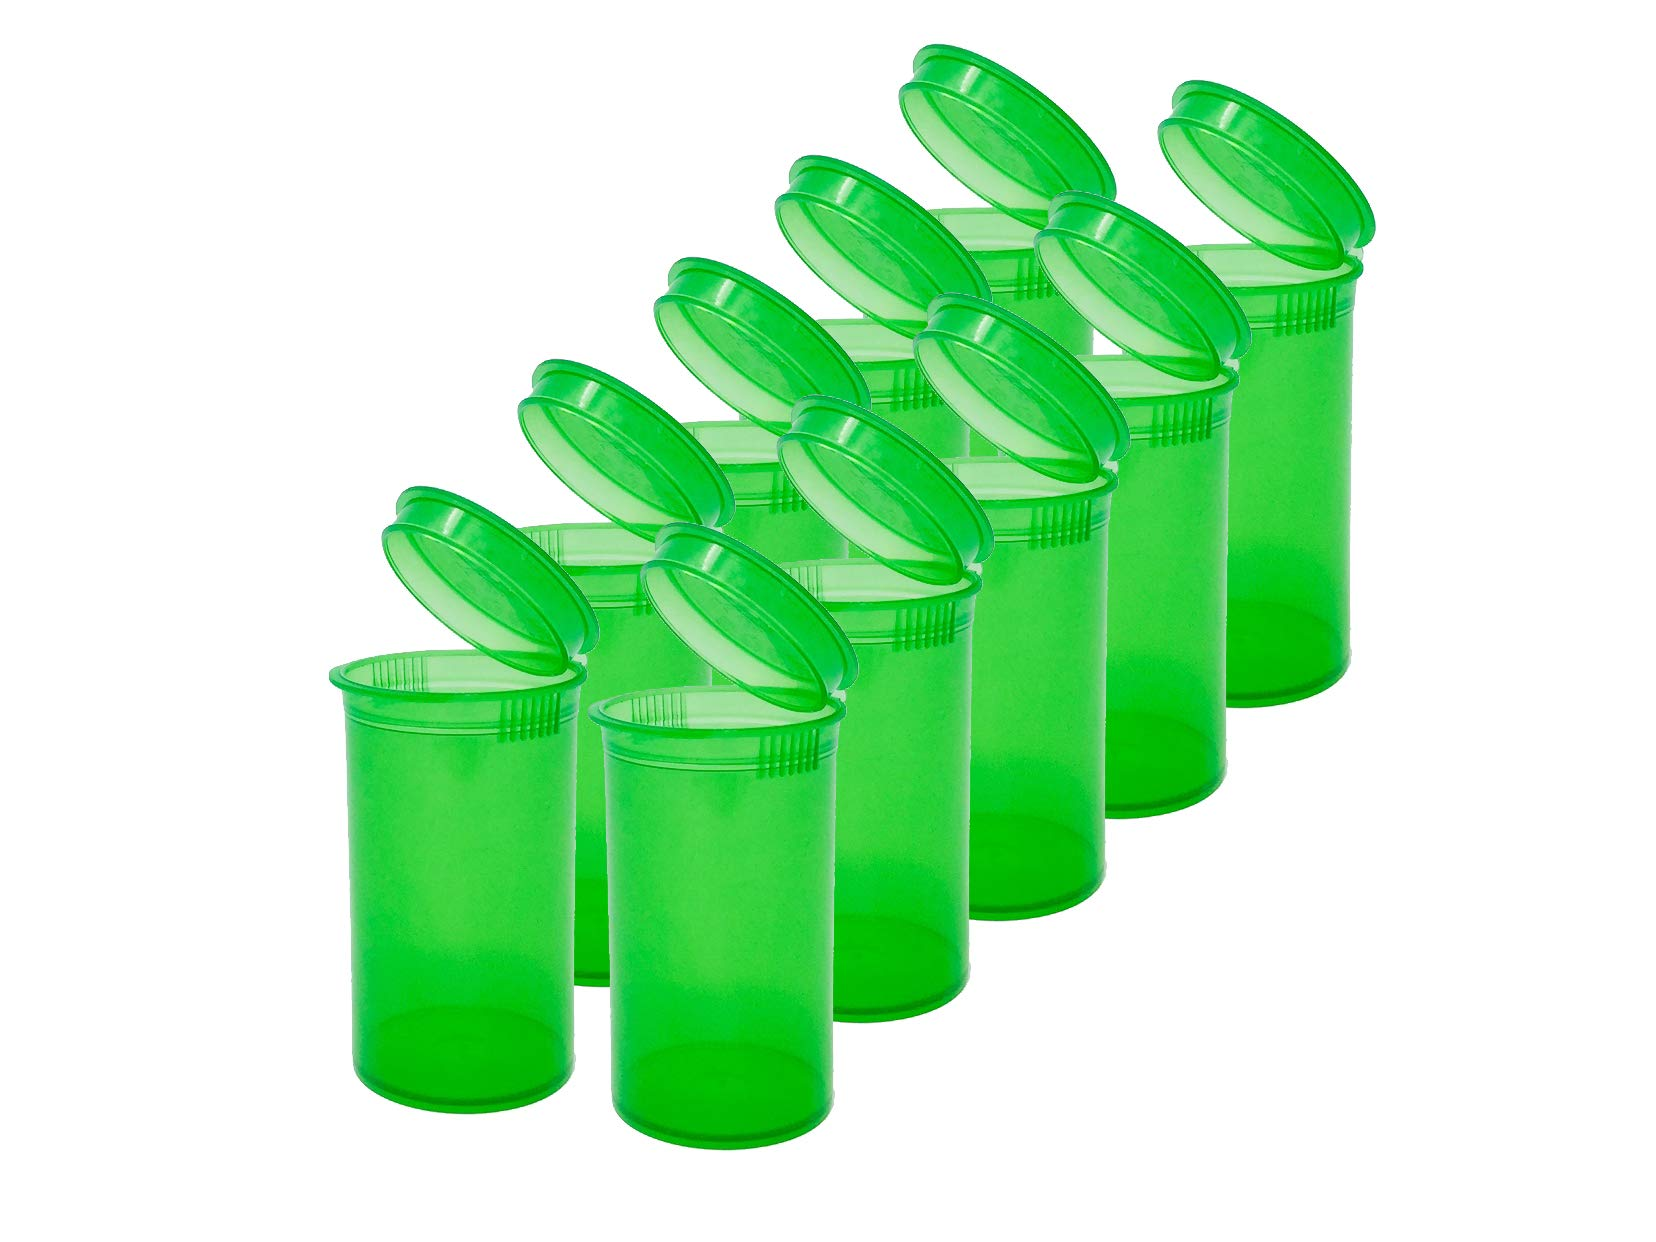 19 DRAM POP TOP Bottles Qty CASE Size Count Squeeze top Rx Pill Bottles Prescription Crafts Coins Storage Medicine 420 Containers Made in USA (900 PCS, Green - Transparent)